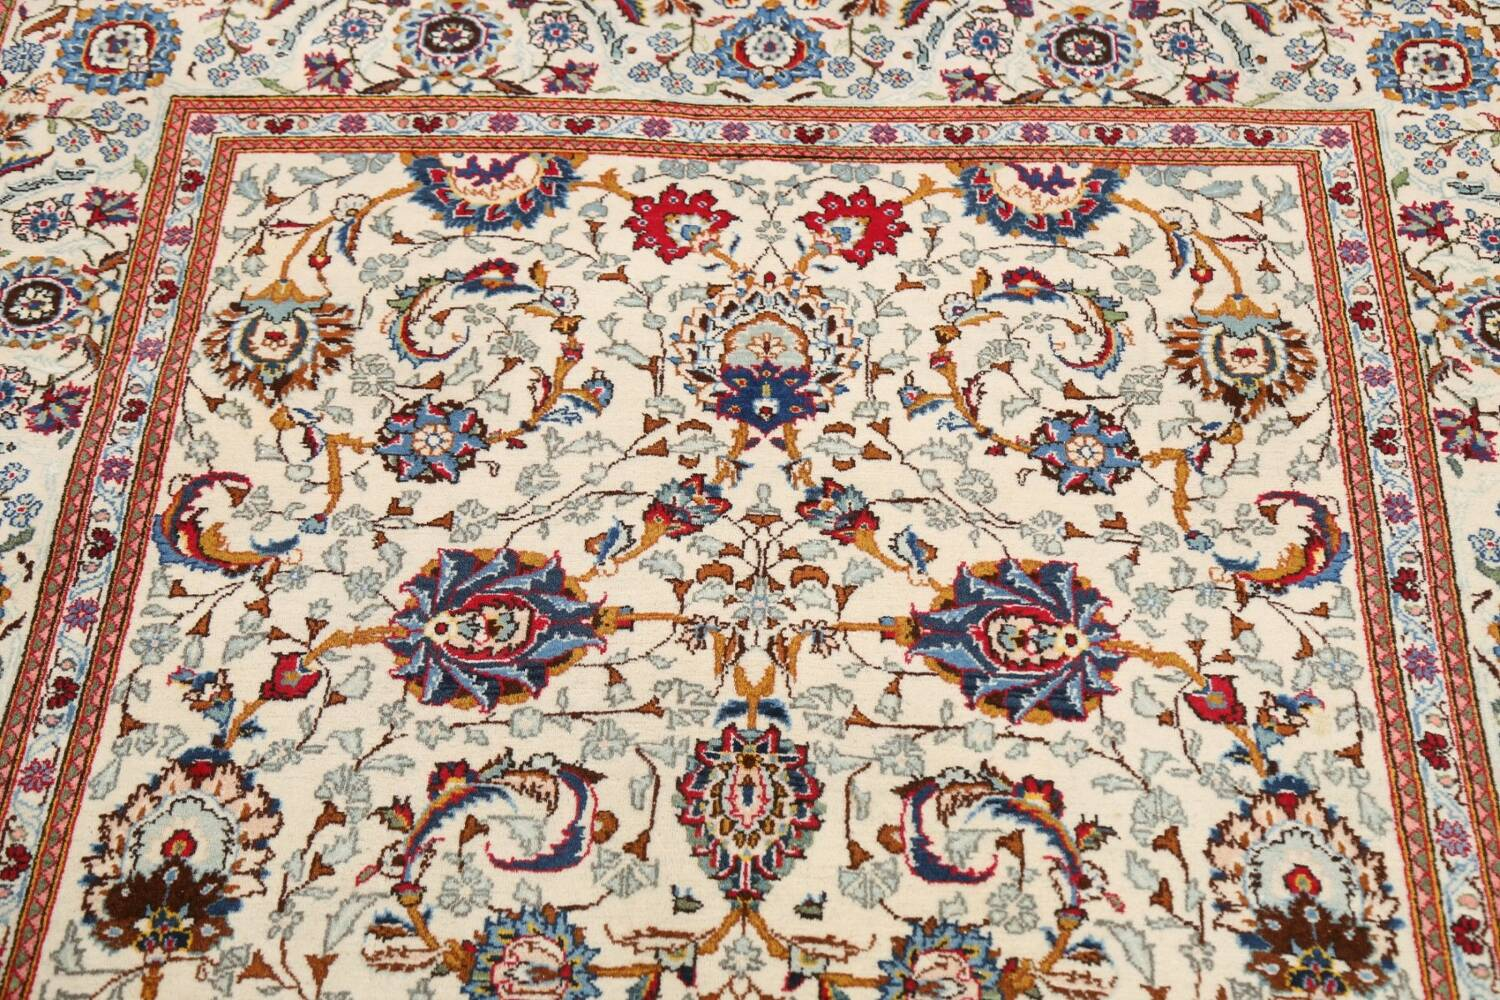 100% Vegetable Dye Floral Kashan Persian Area Rug 4x7 image 10